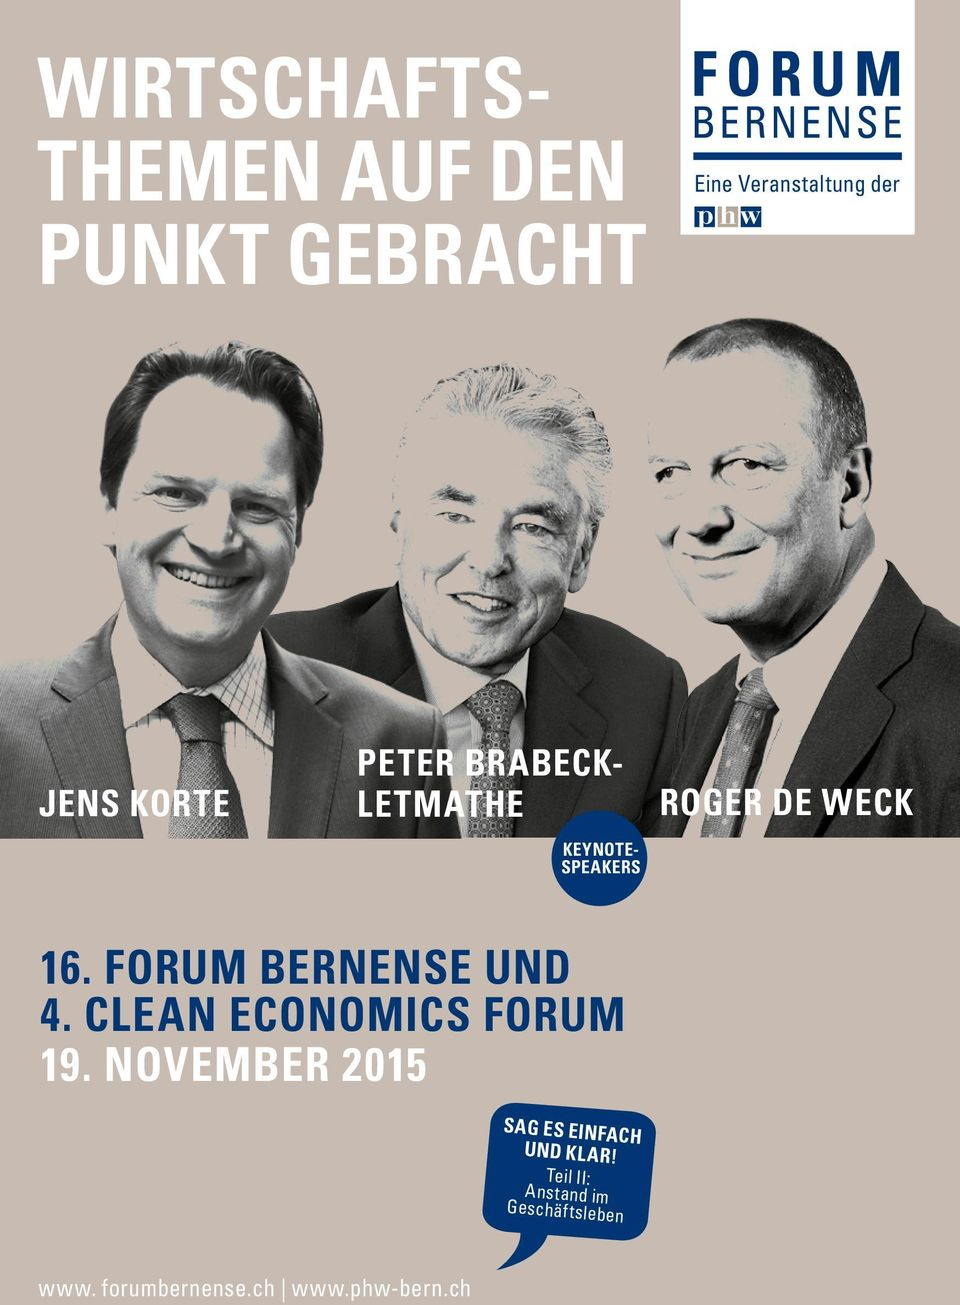 FORUM BERNENSE UND 4. CLEAN ECONOMICS FORUM 19.